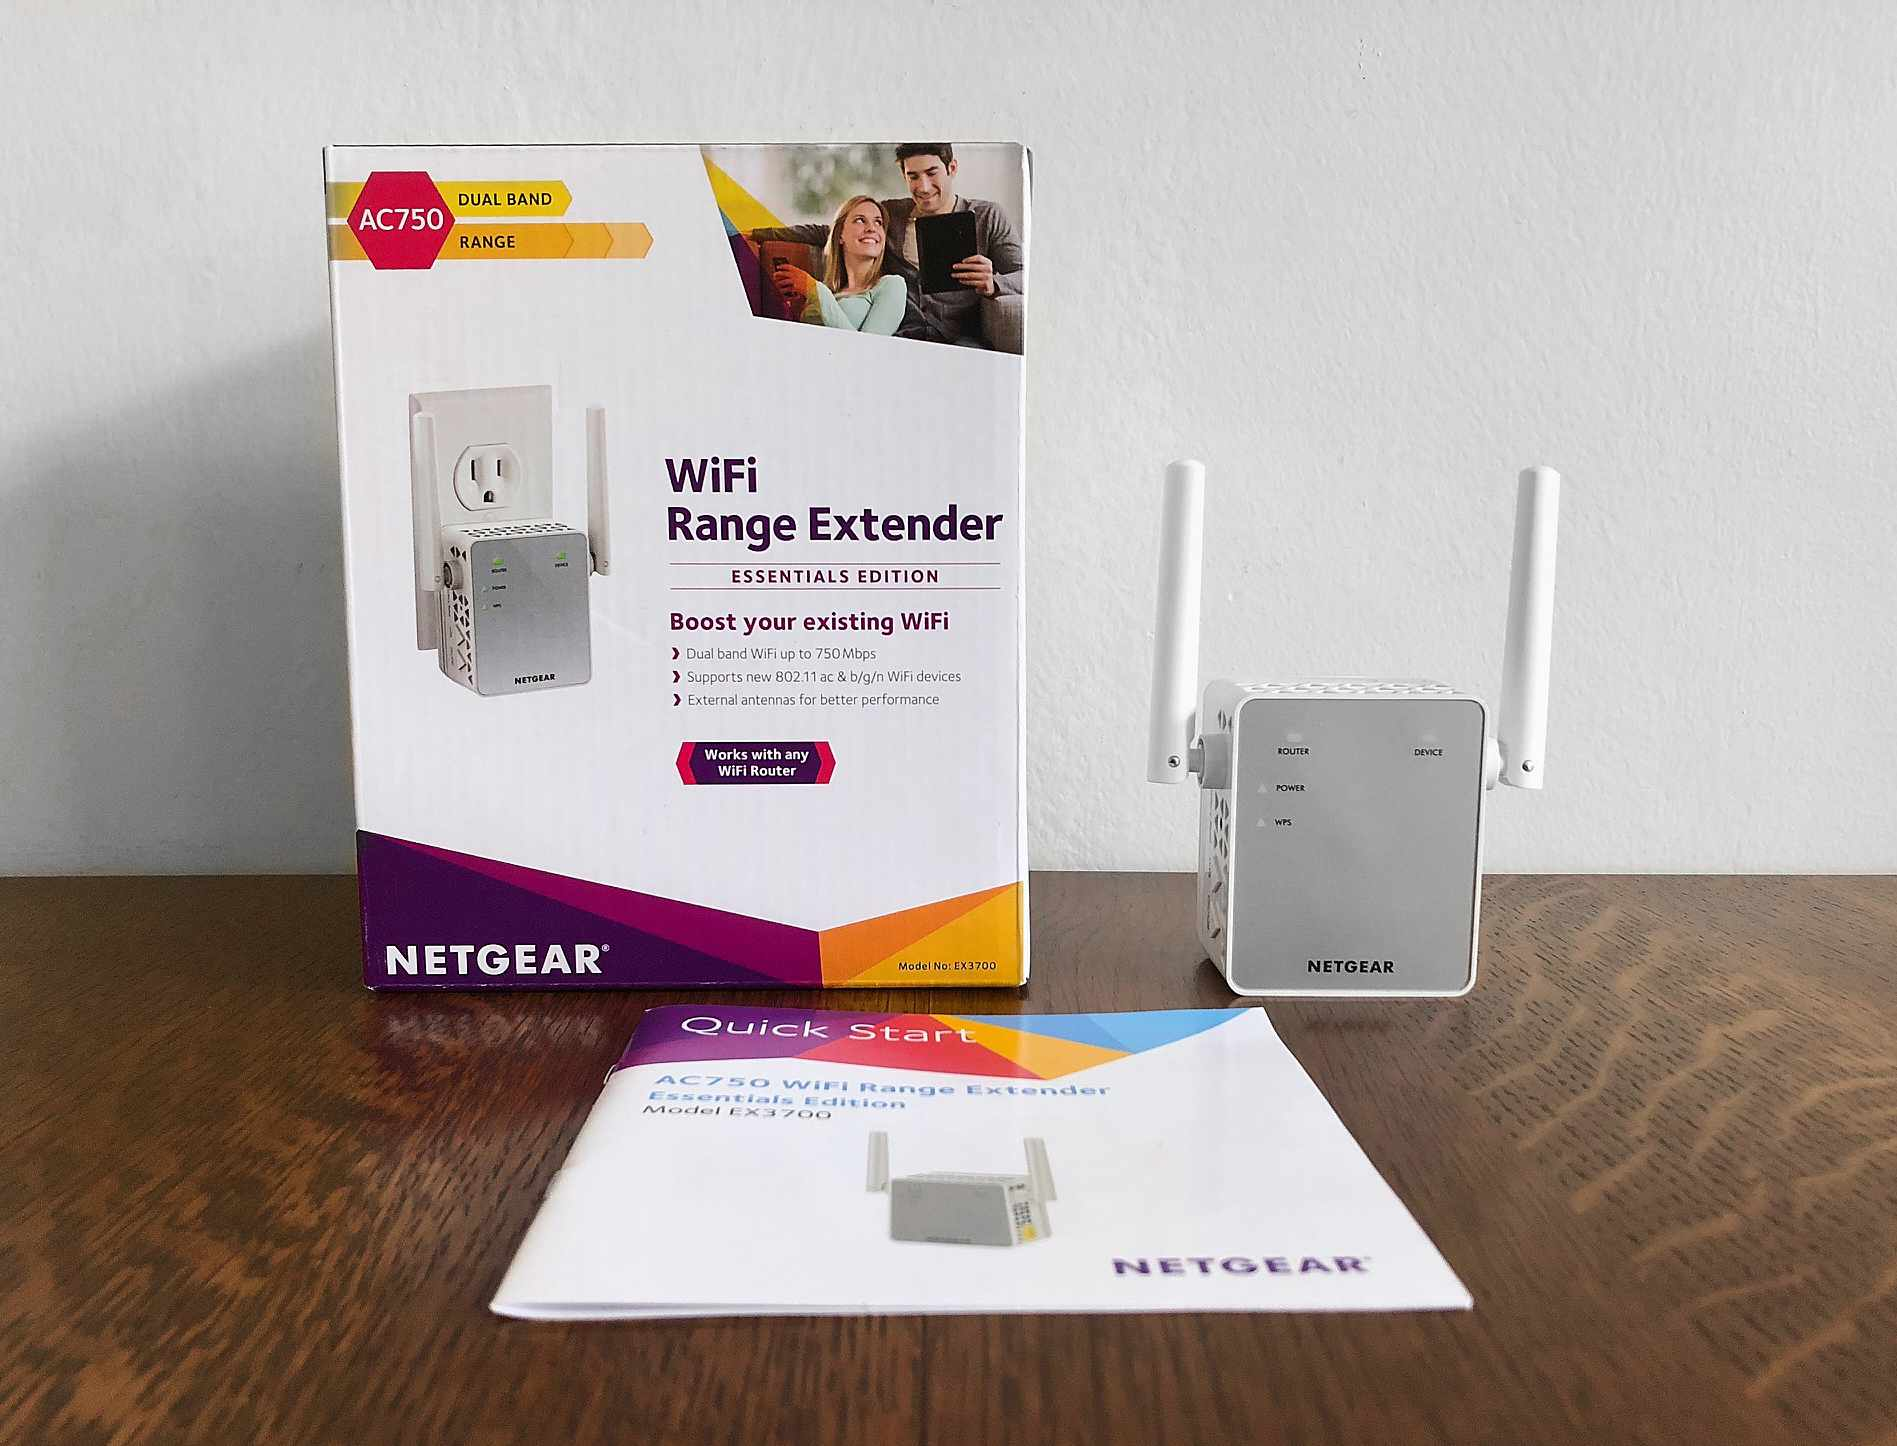 The 10 Best Wi Fi Extenders To Buy In 2019 Wireless Router Hook Up Diagram On Setting With Dsl According Our Testers This Extender Was Very Easy Set One Reviewer Also Liked Its Small Size And Style It Blends Into Any Place You